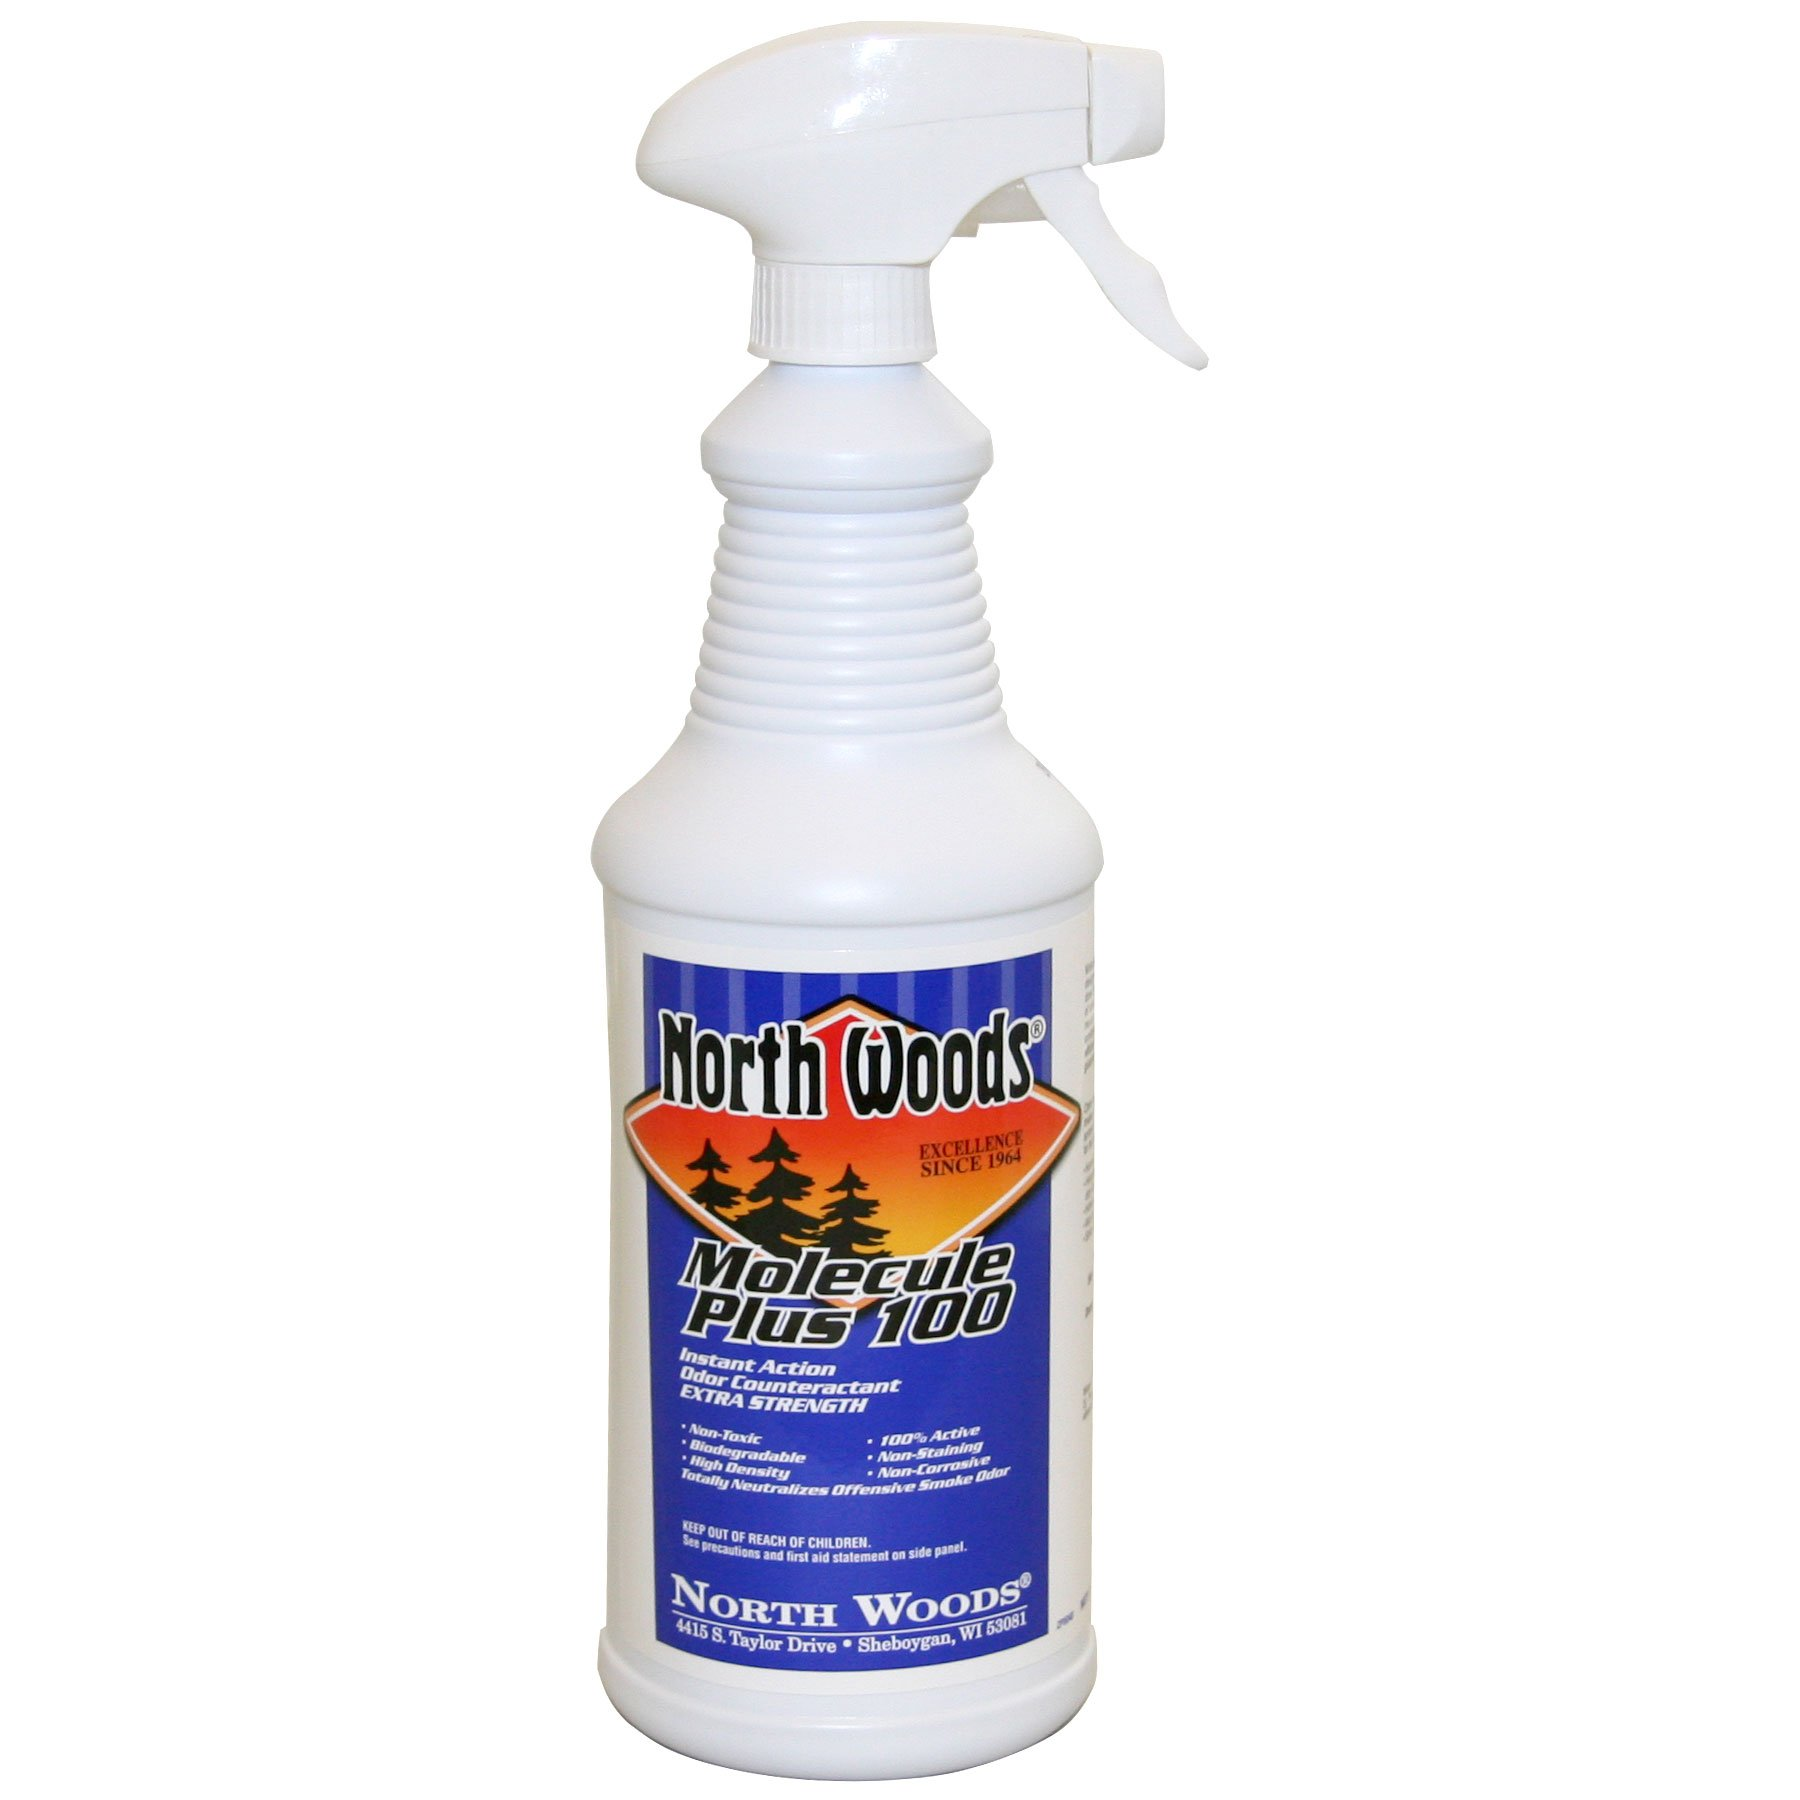 Molecule Plus 100 - Natural Odor Eliminator Spray to Remove Smoke and Other Odors